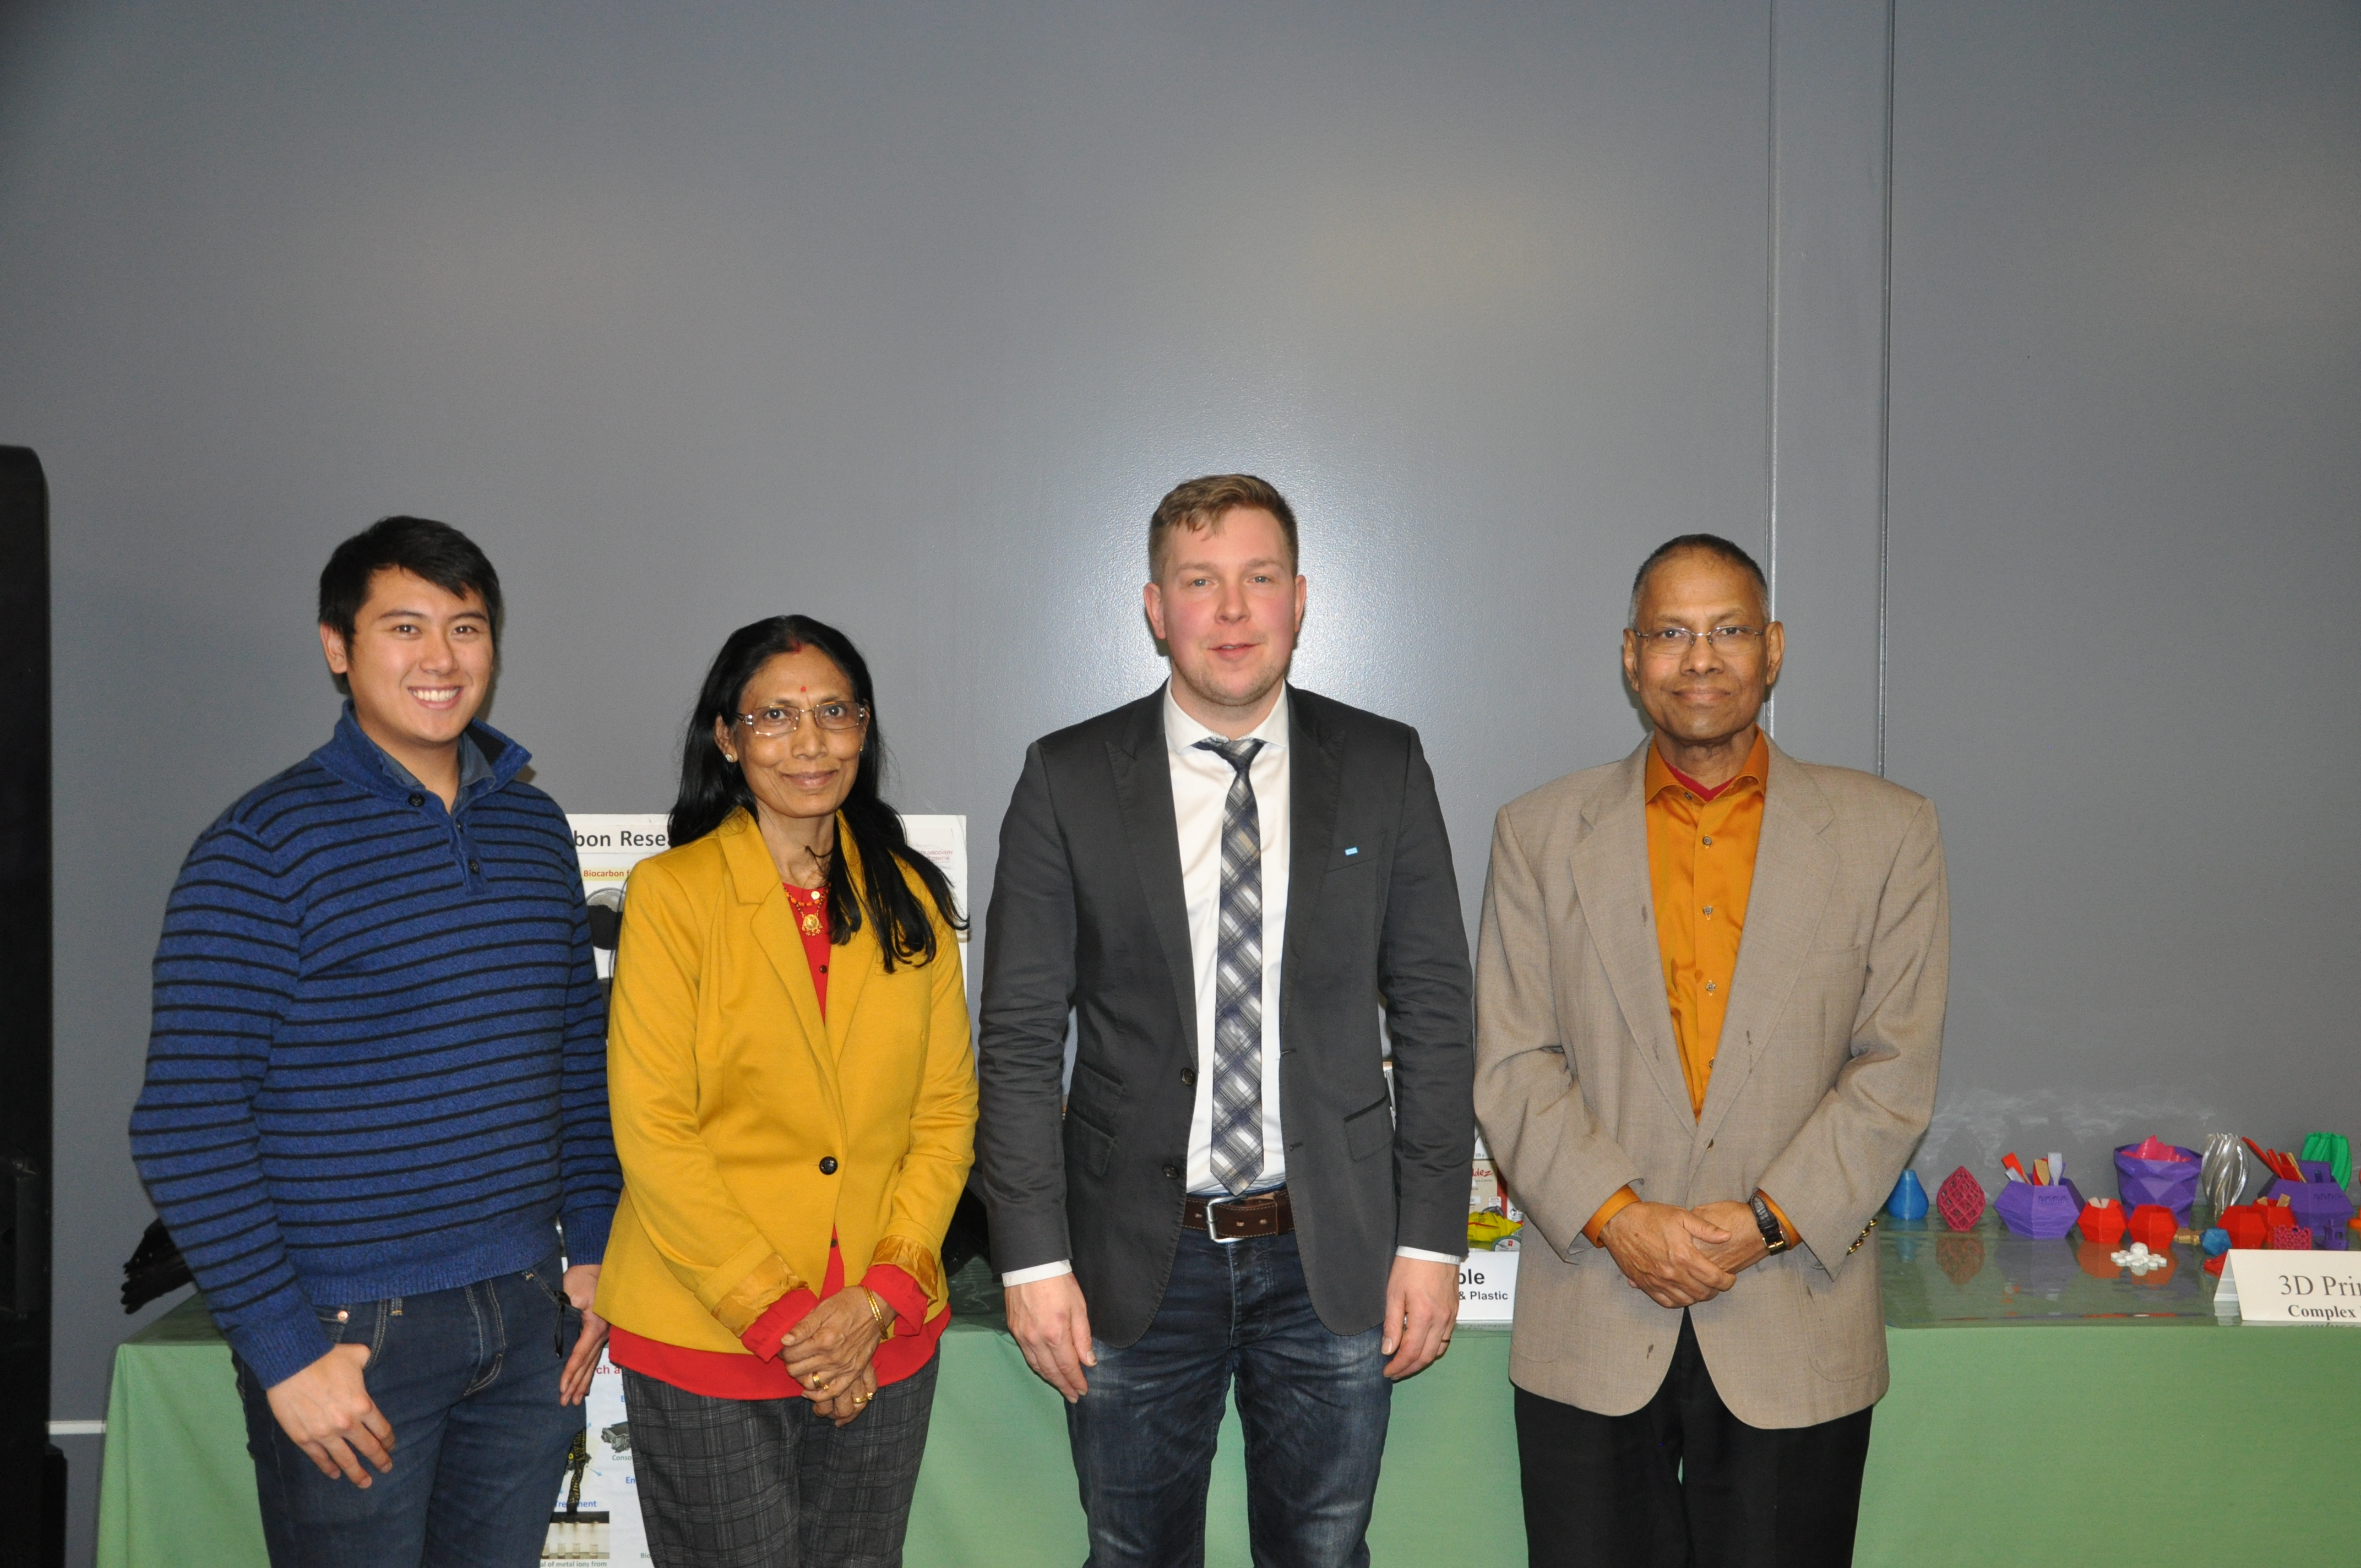 Professor Misra, Mohanty, and outreach coordinator Eugene Enriquez from BDDC with Prof Mikko Kannerva